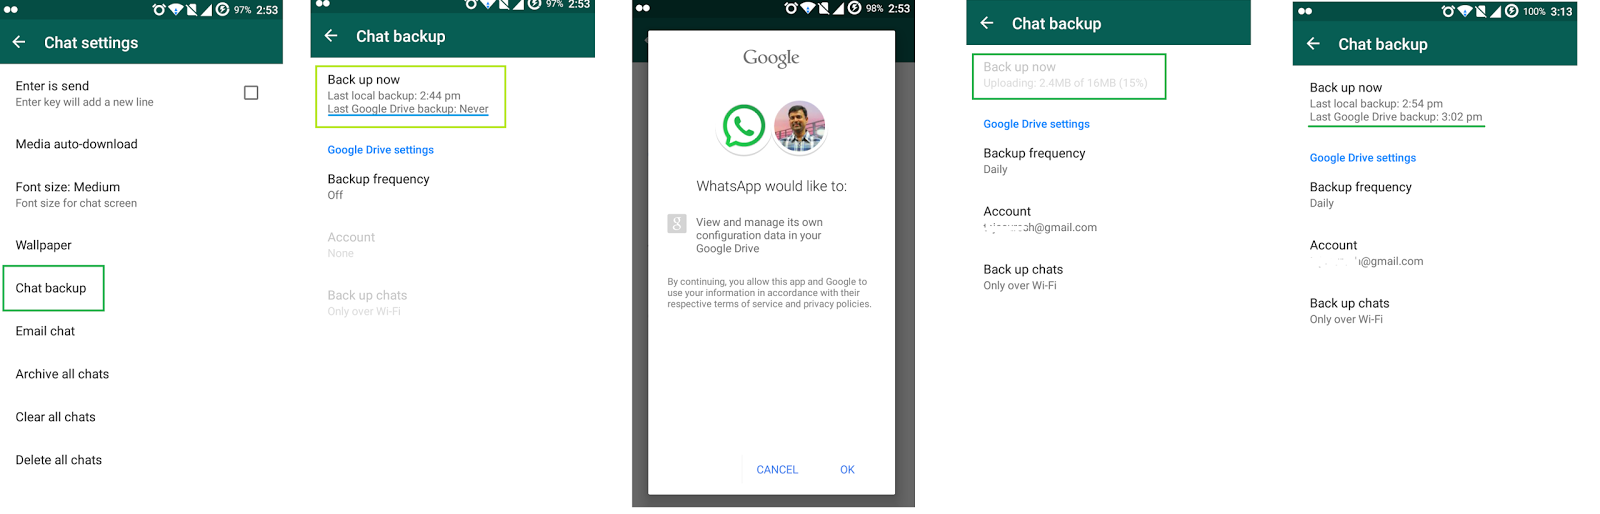 whatsapp backup flow for the first time